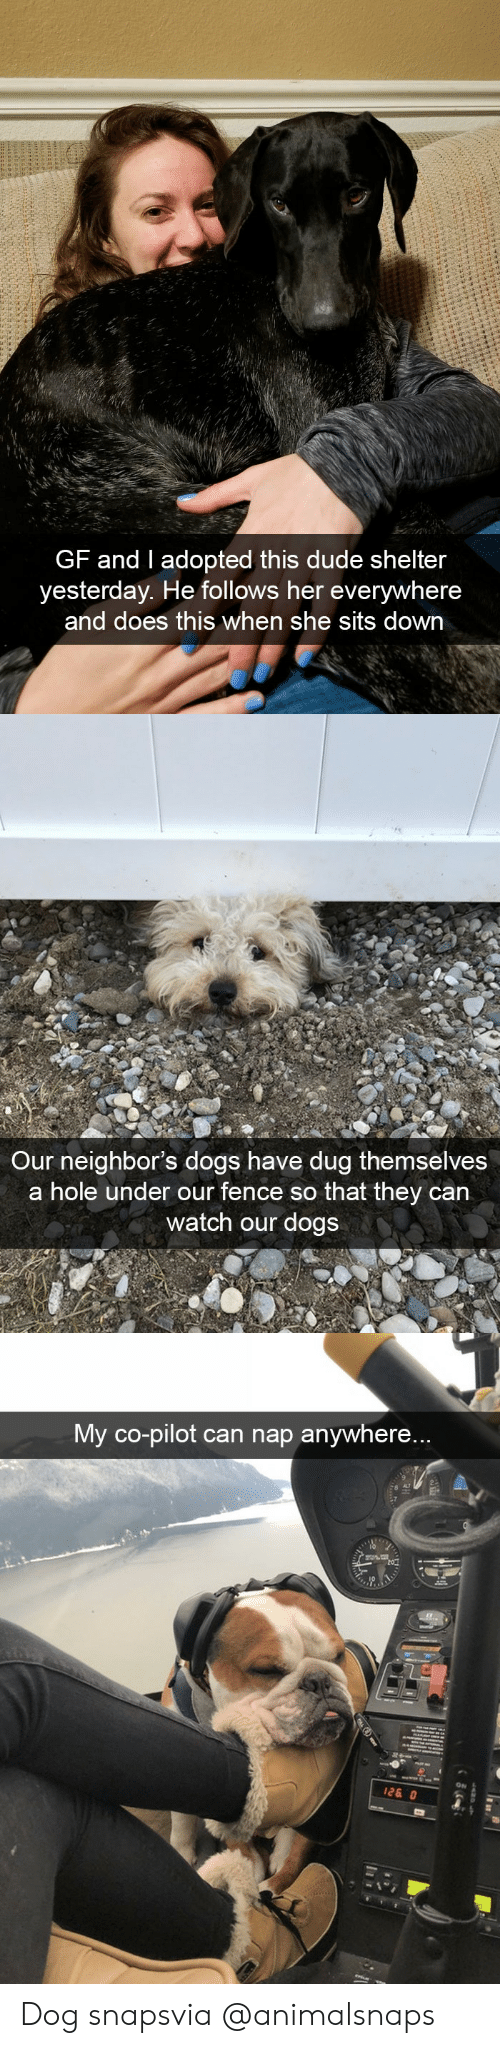 Dogs, Dude, and Target: GF and I adopted this dude shelter  yesterday. He follows her everywhere  and does this when she sits down   Our neighbor's dogs have dug themselves  a hole under our fence so that they can  watch our dogs   My co-pilot can nap anywhere...  ON Dog snapsvia @animalsnaps